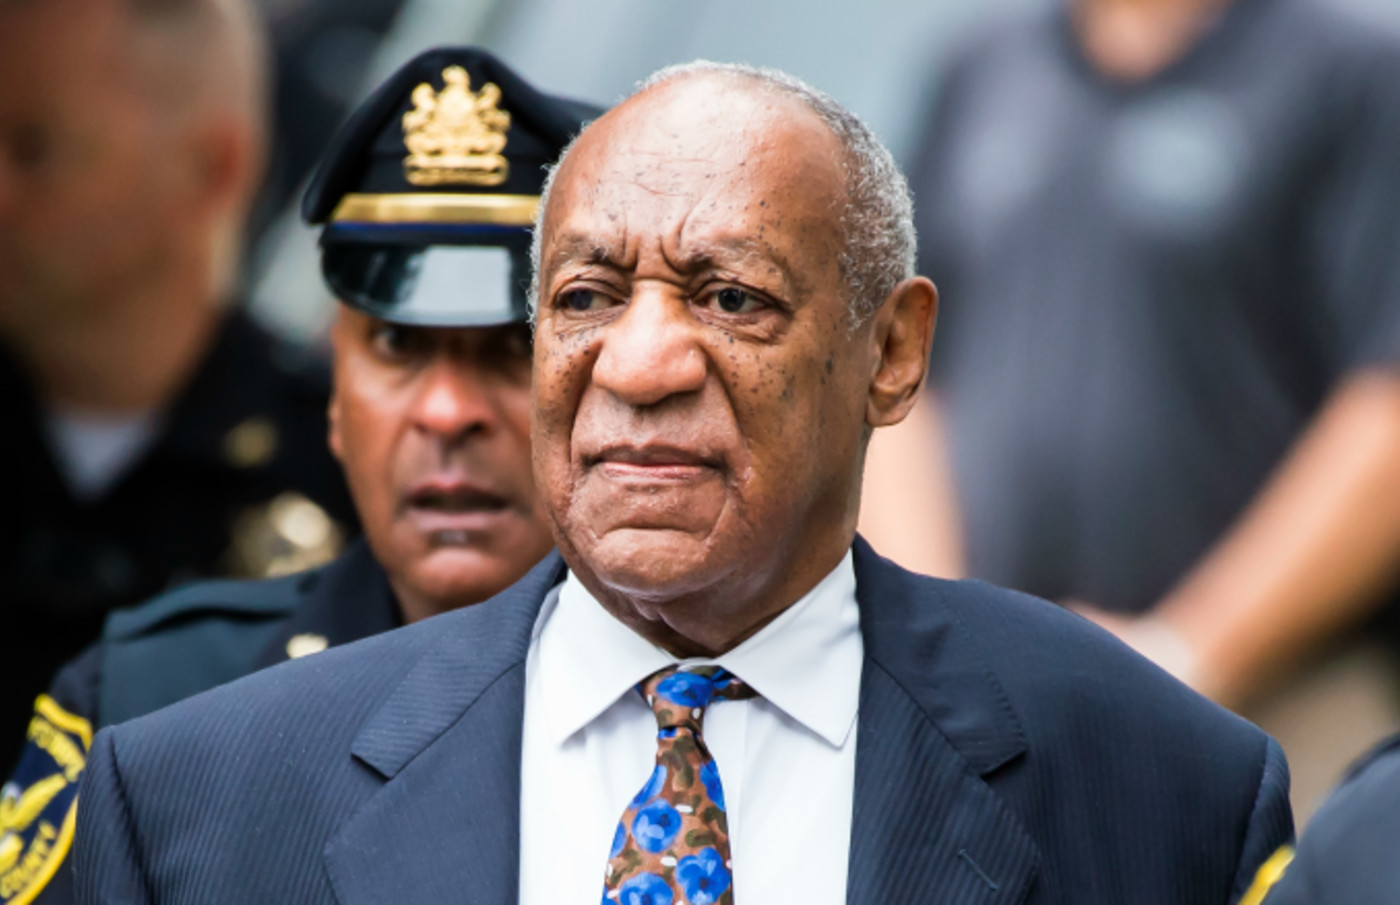 Actor/stand-up comedian Bill Cosby